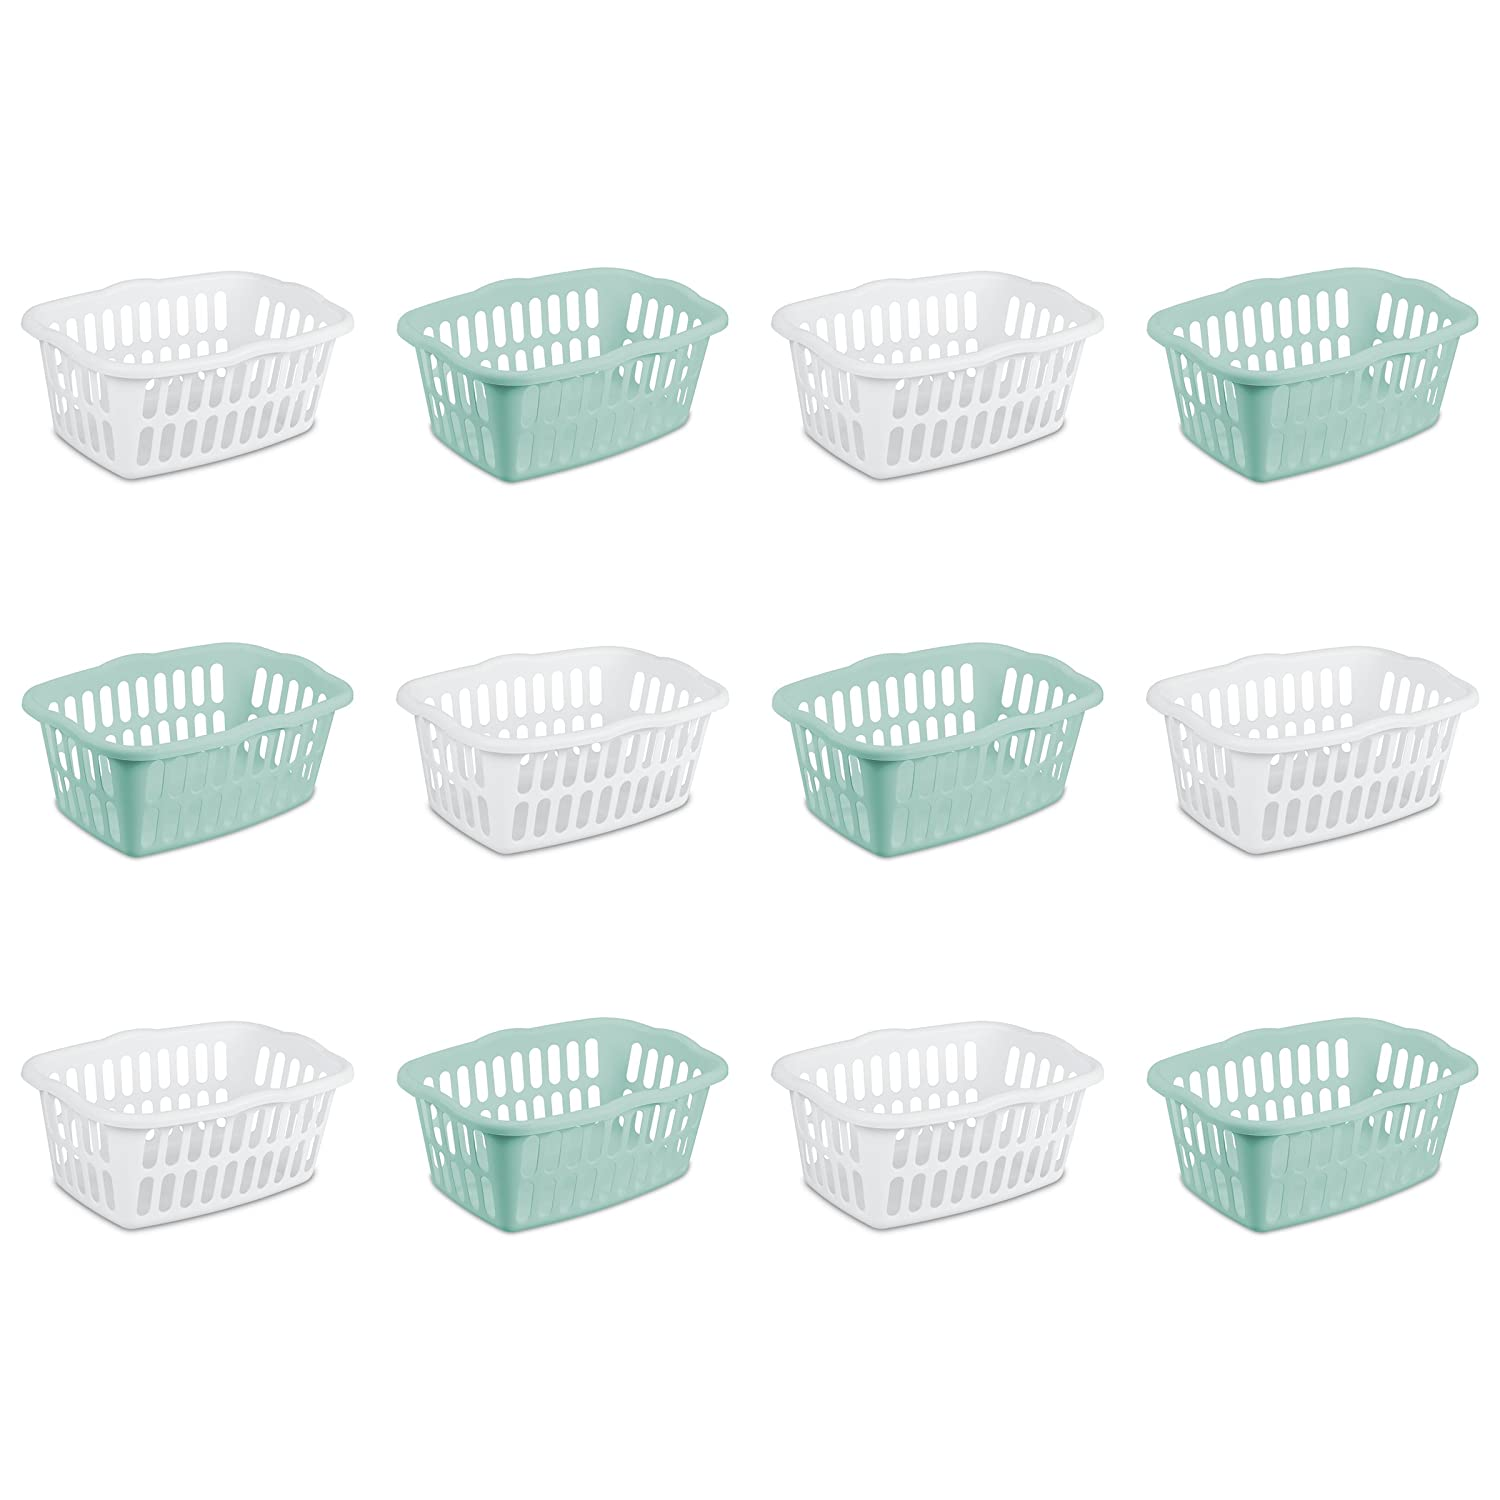 Sterilite 12459412 1.5 Bushel/53 Liter Rectangular Laundry Basket, White & Aqua Chrome, Assorted, 12-Pack